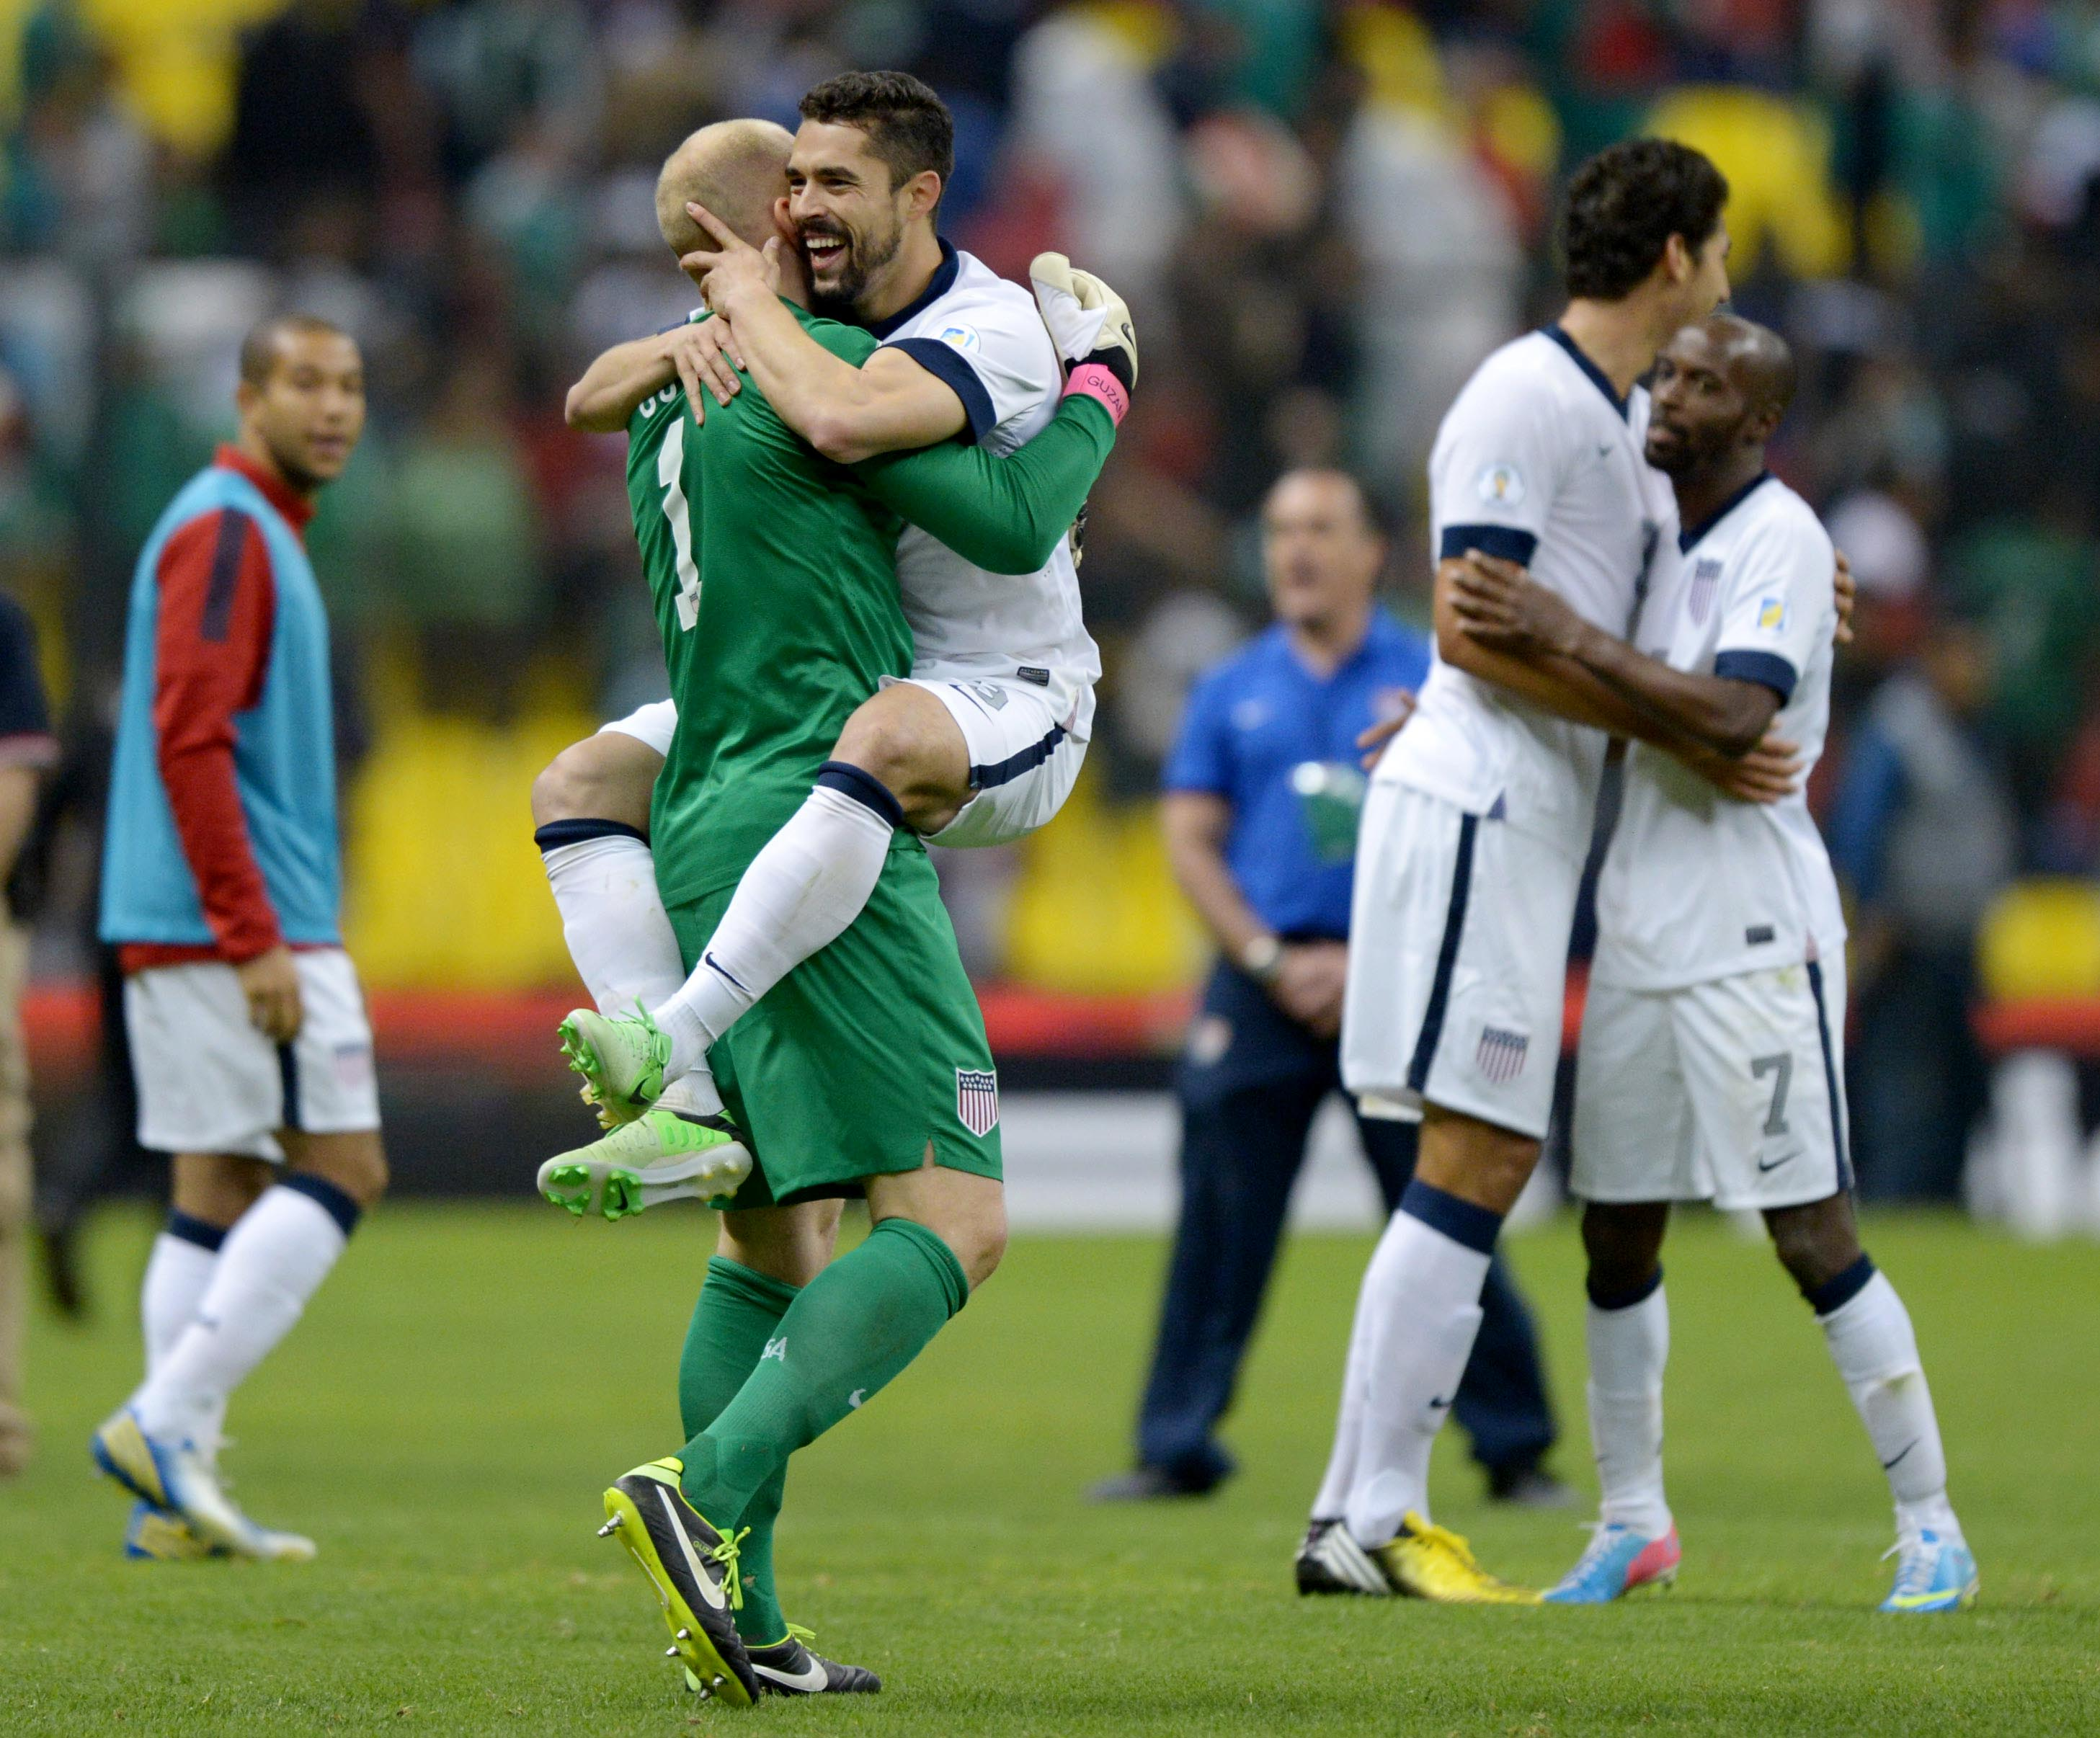 Brad Guzan (1) celebrates with Herculez Gomez after a 0-0 draw against Mexico. (USAT Sports)